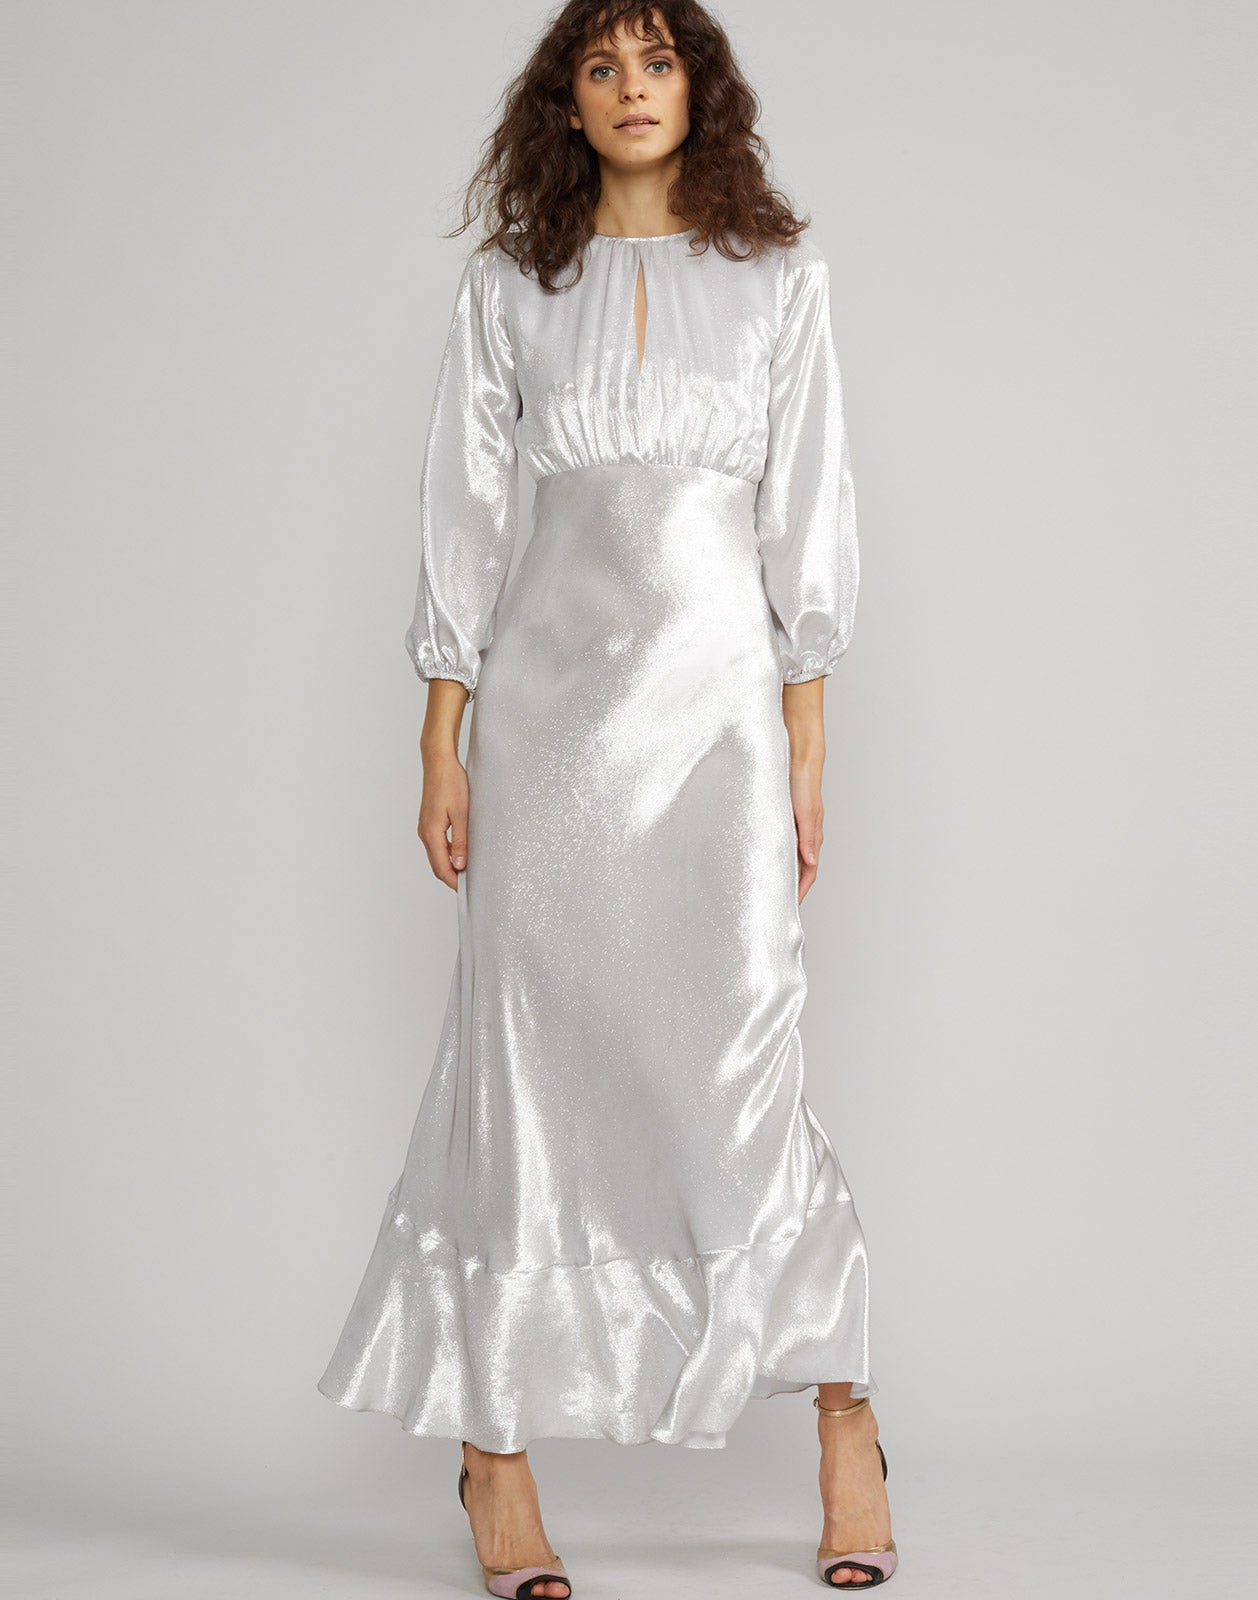 Front view of model wearing Silver Lake Metallic Maxi Dress.